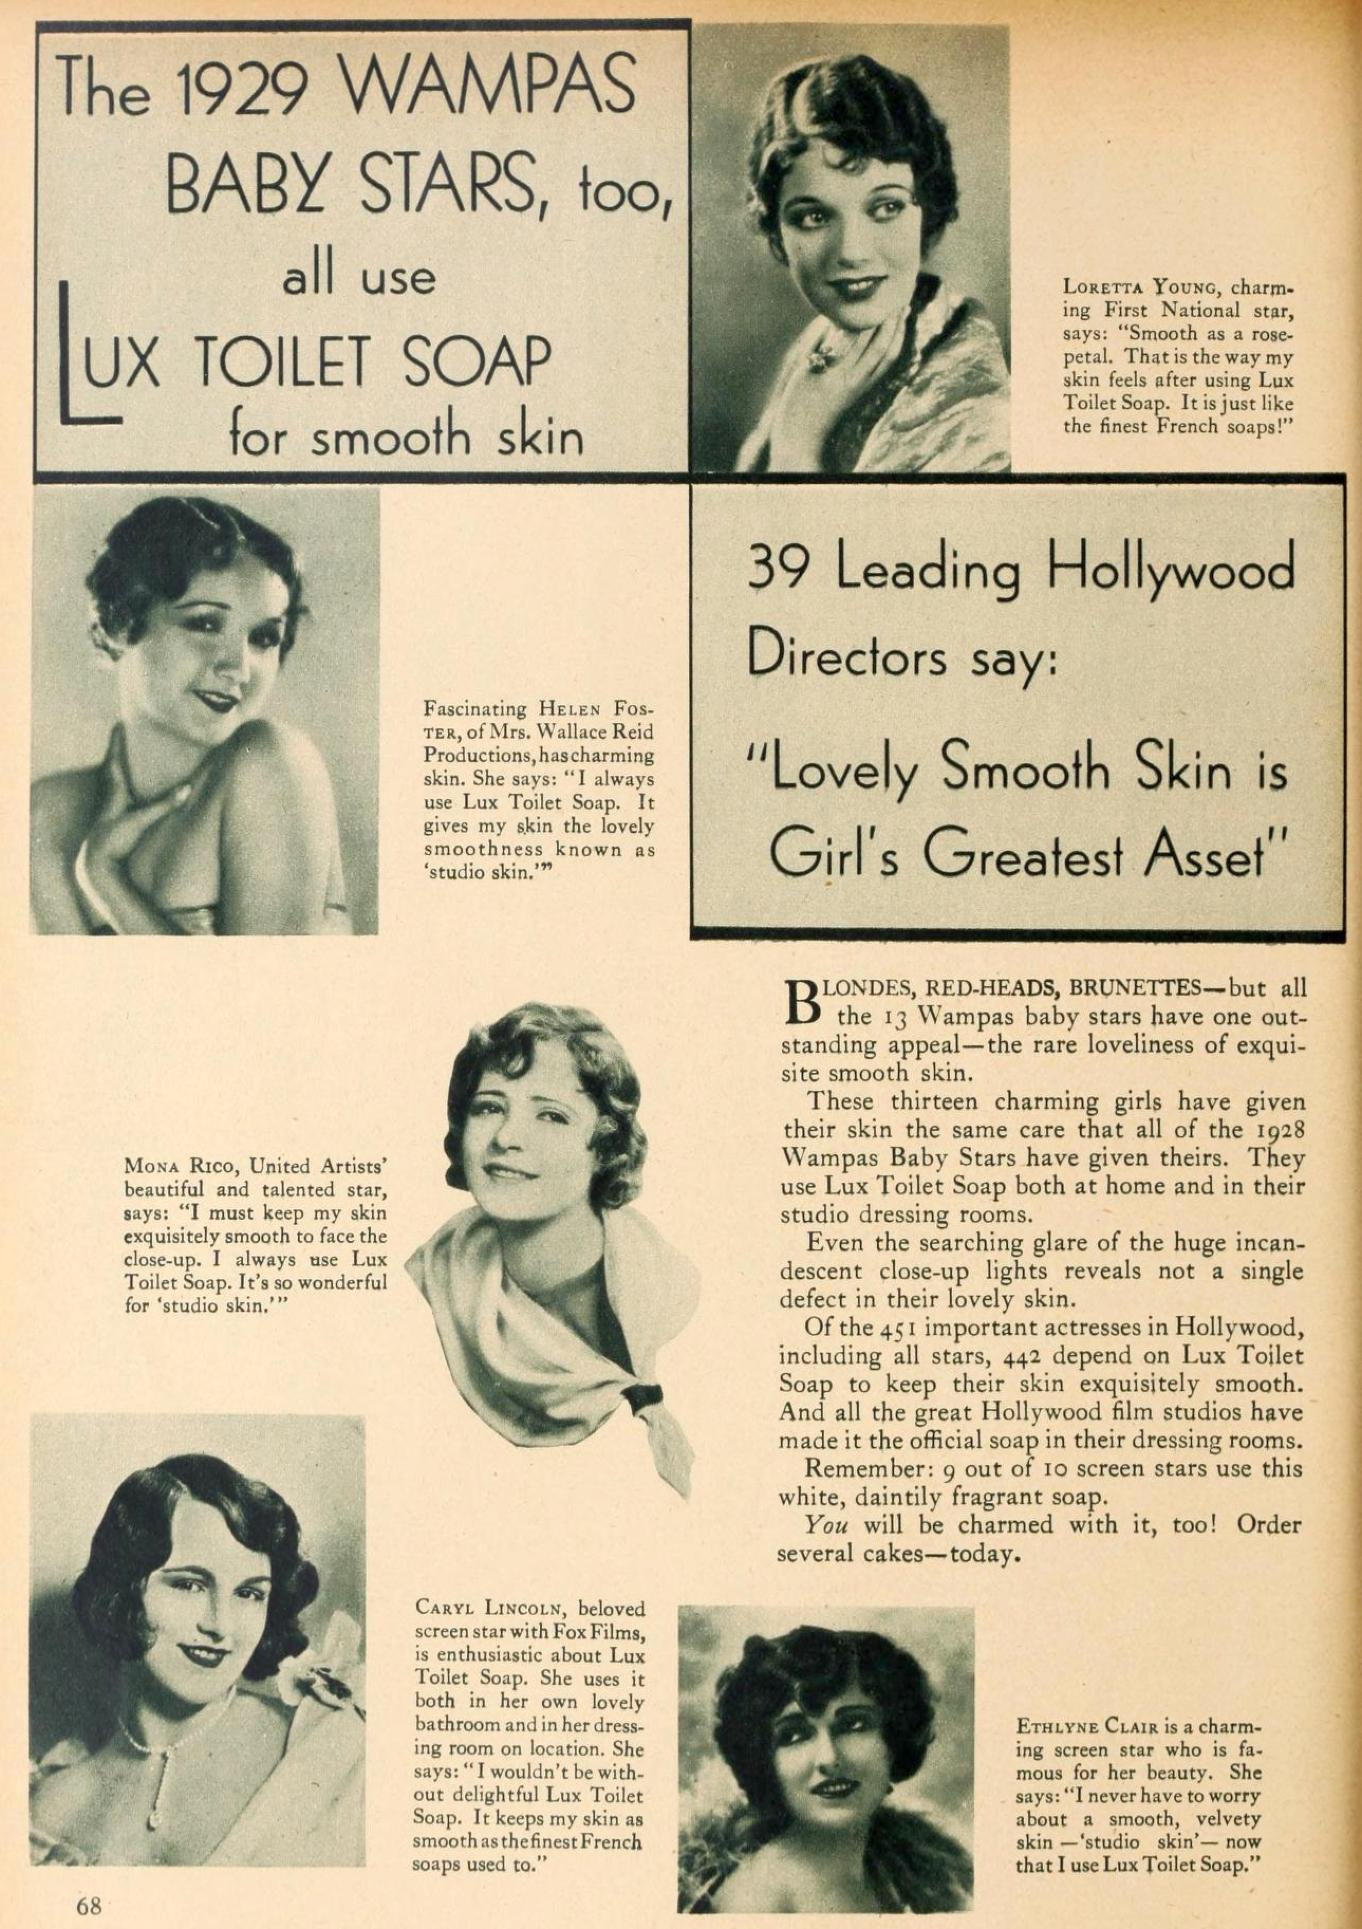 motion picture classic may 1929oa